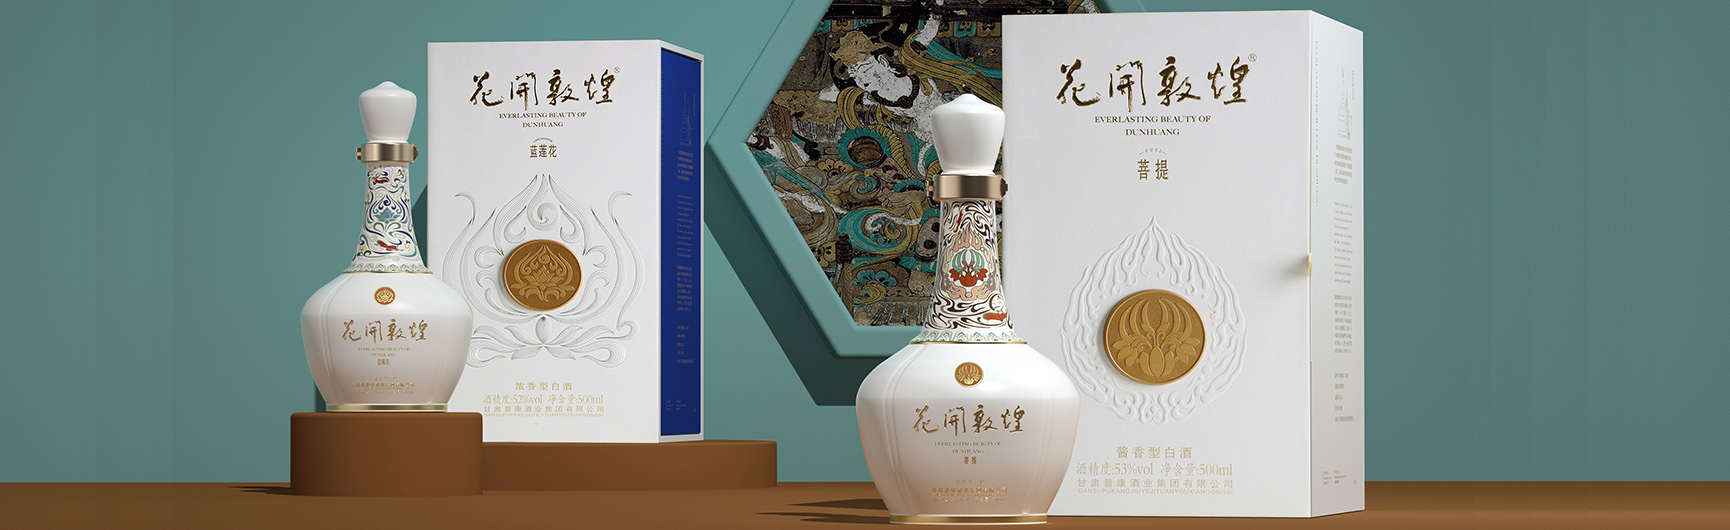 Everlasting Beauty of Dunhuang Liquor Featured Image